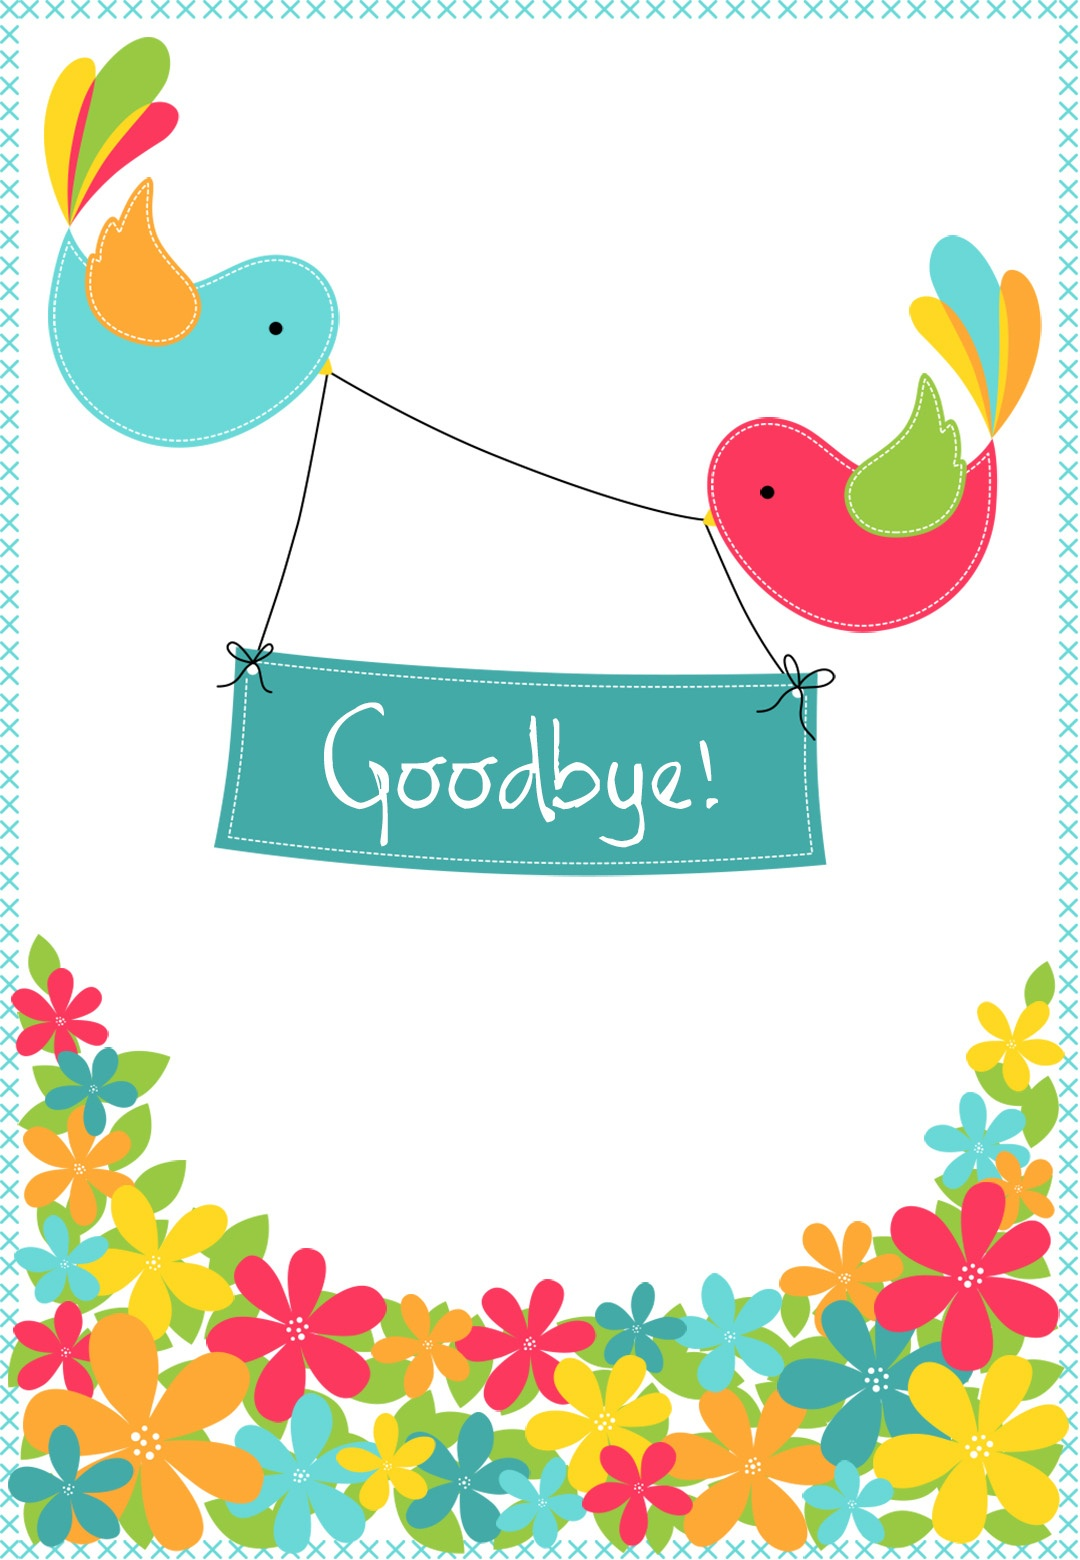 Goodbye From Your Colleagues - Good Luck Card (Free)   Greetings Island - Free Printable Good Luck Cards